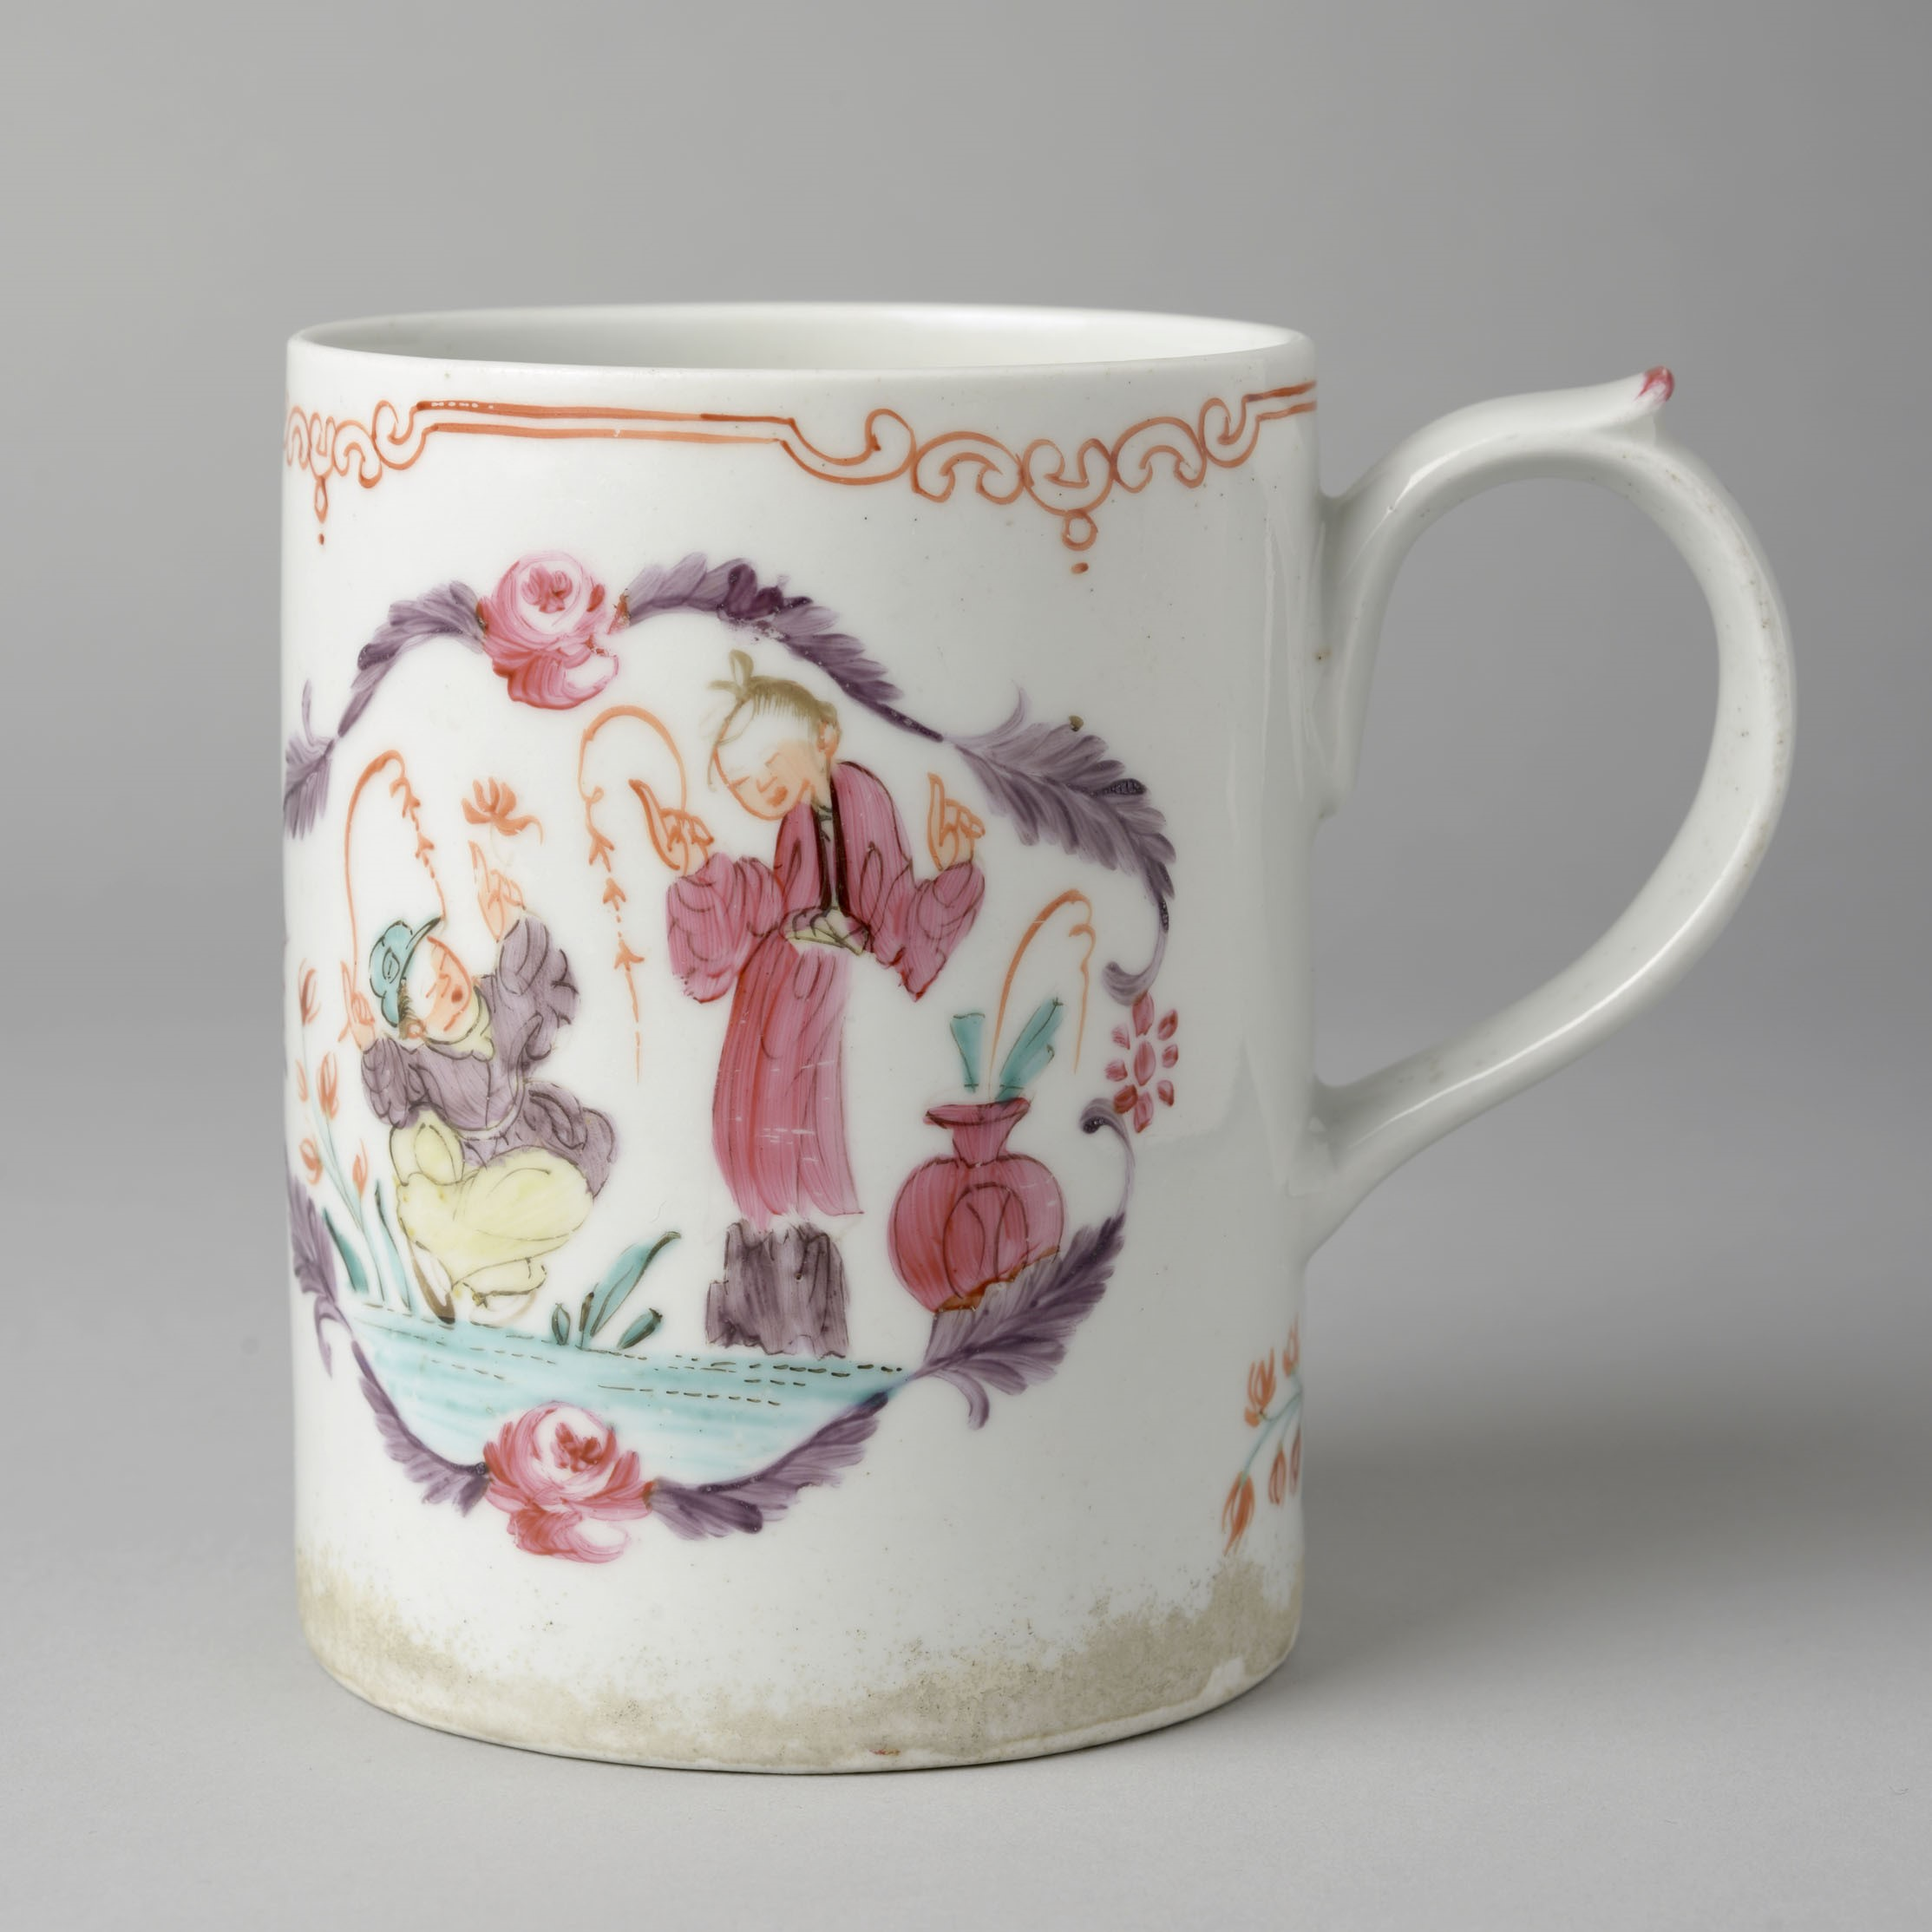 A white porcelain cup decorated with a cameo featuring two men; however it's unclear what they're doing as the cup is turned to the side.